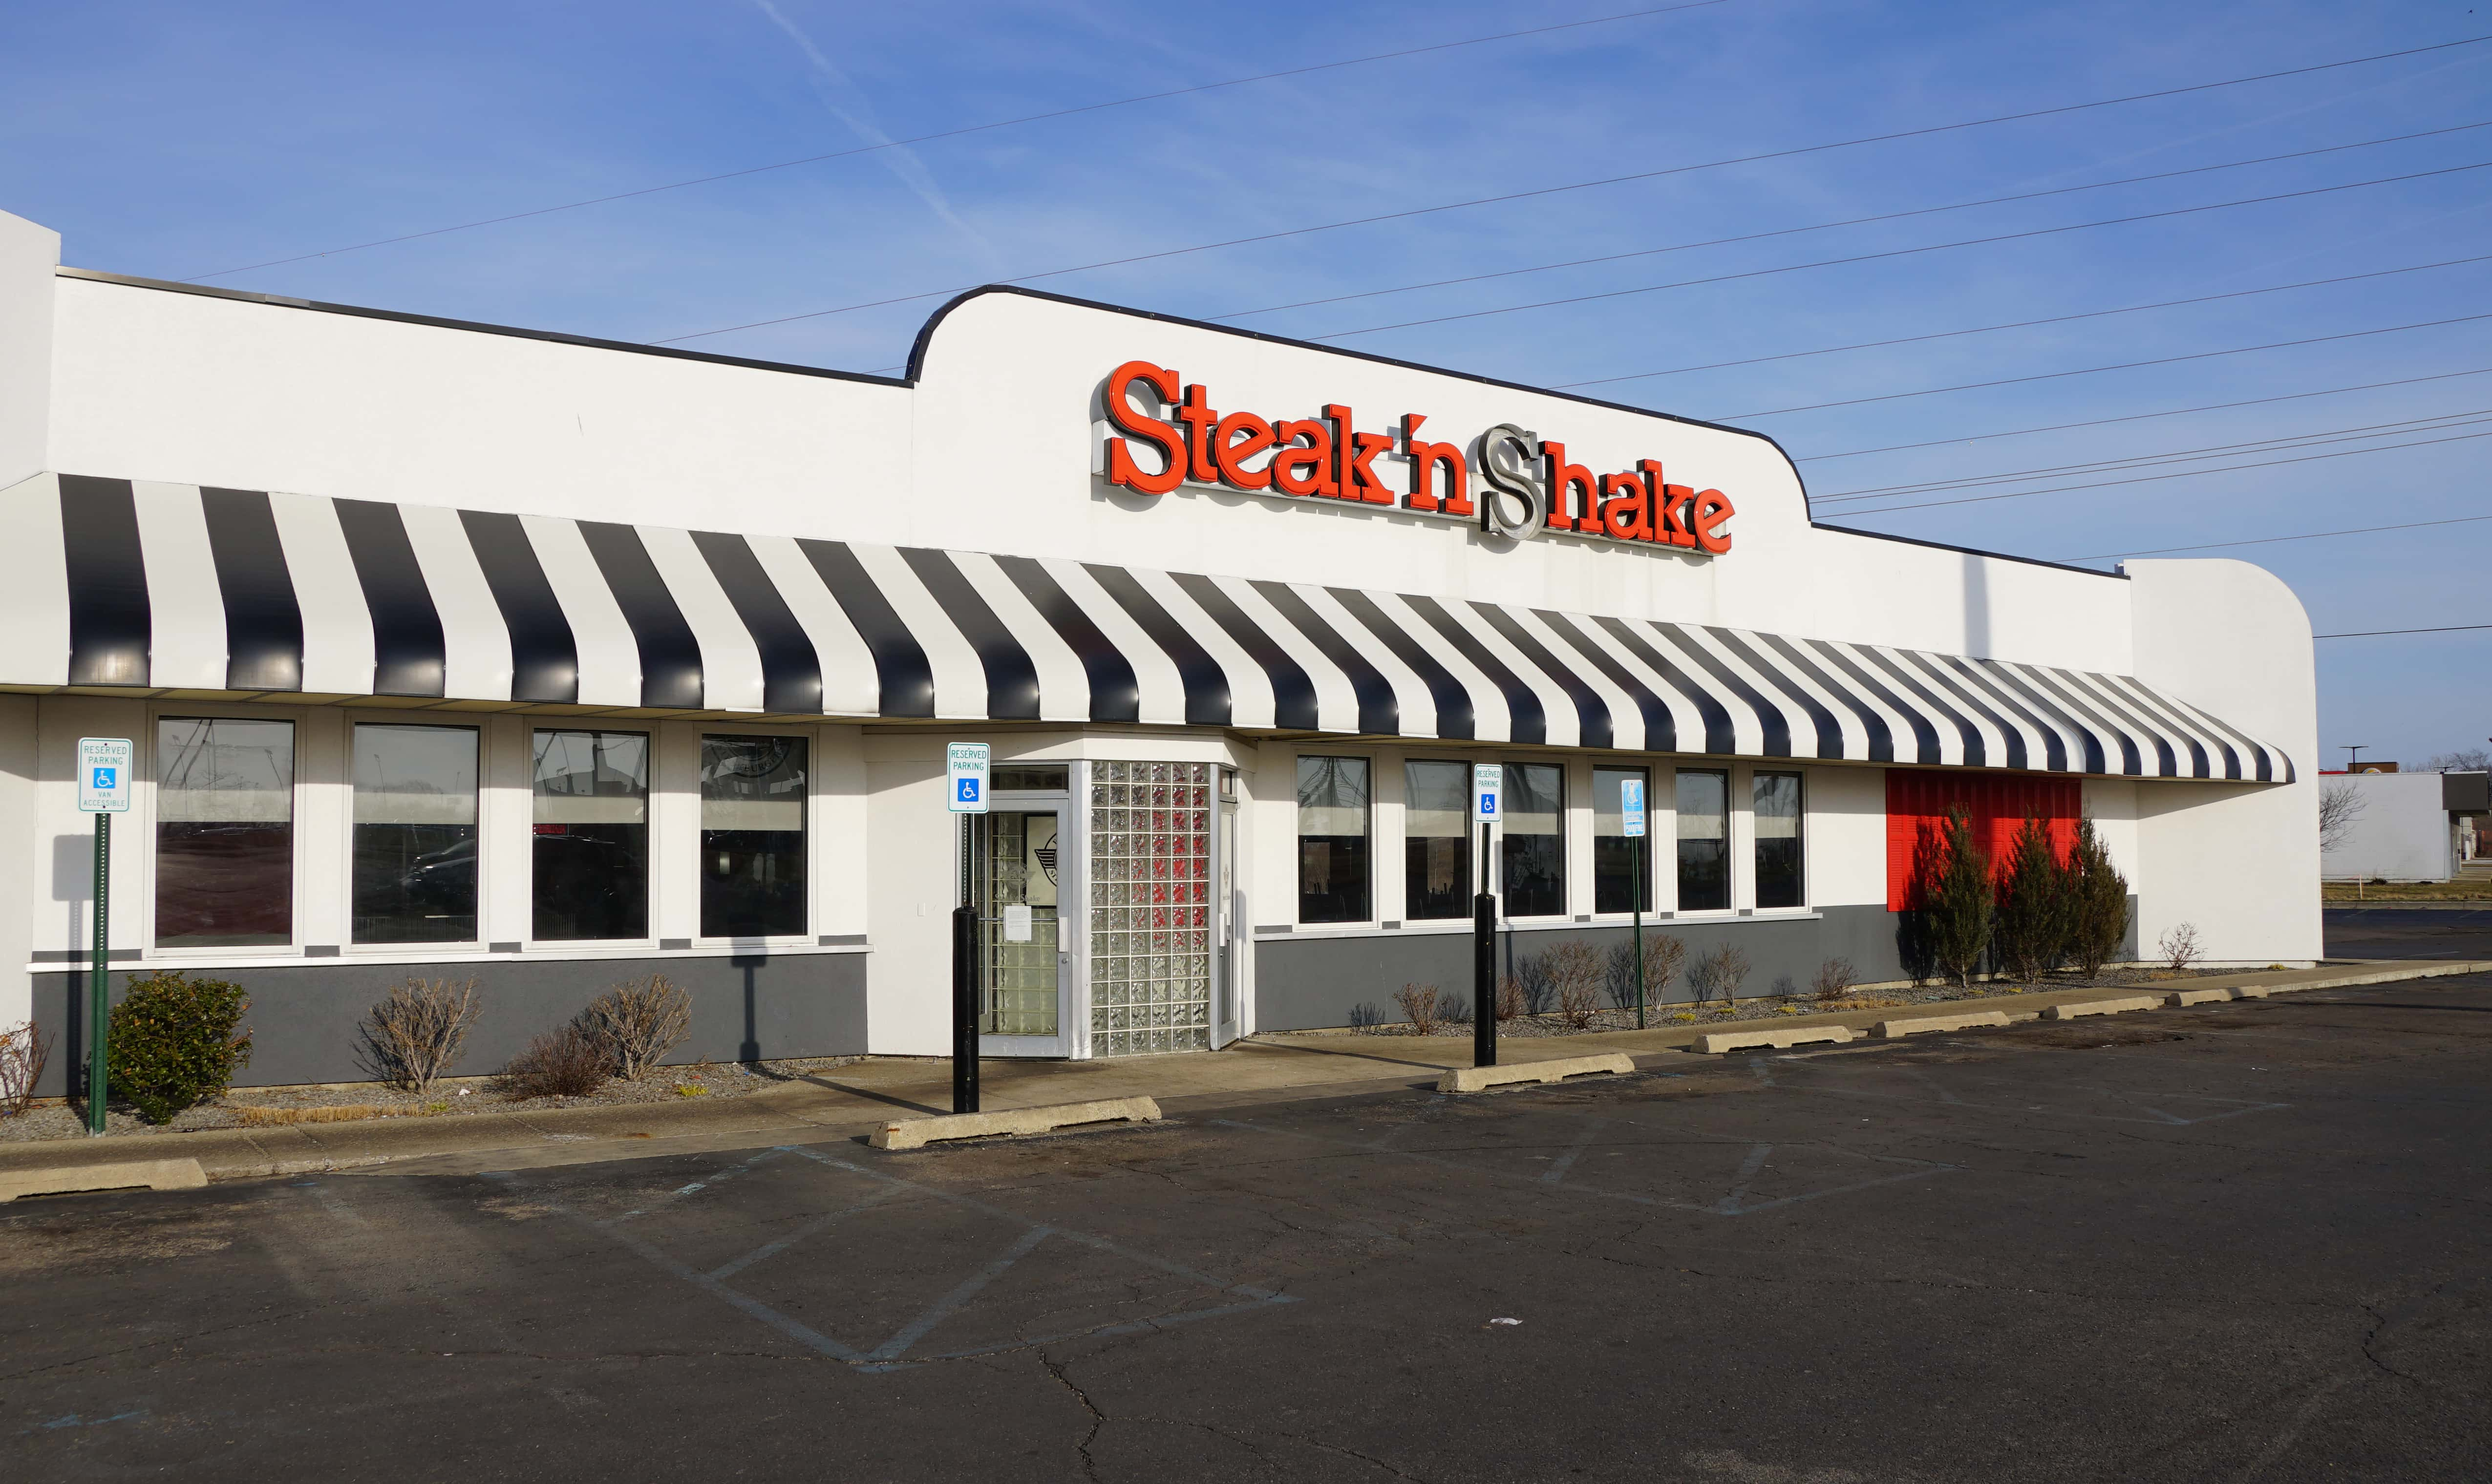 38021c59 If you're in need of a fix from Steak 'n Shake in Benton Harbor, the wait  might be a while. The Pipestone Road restaurant has been closed down...but  ...